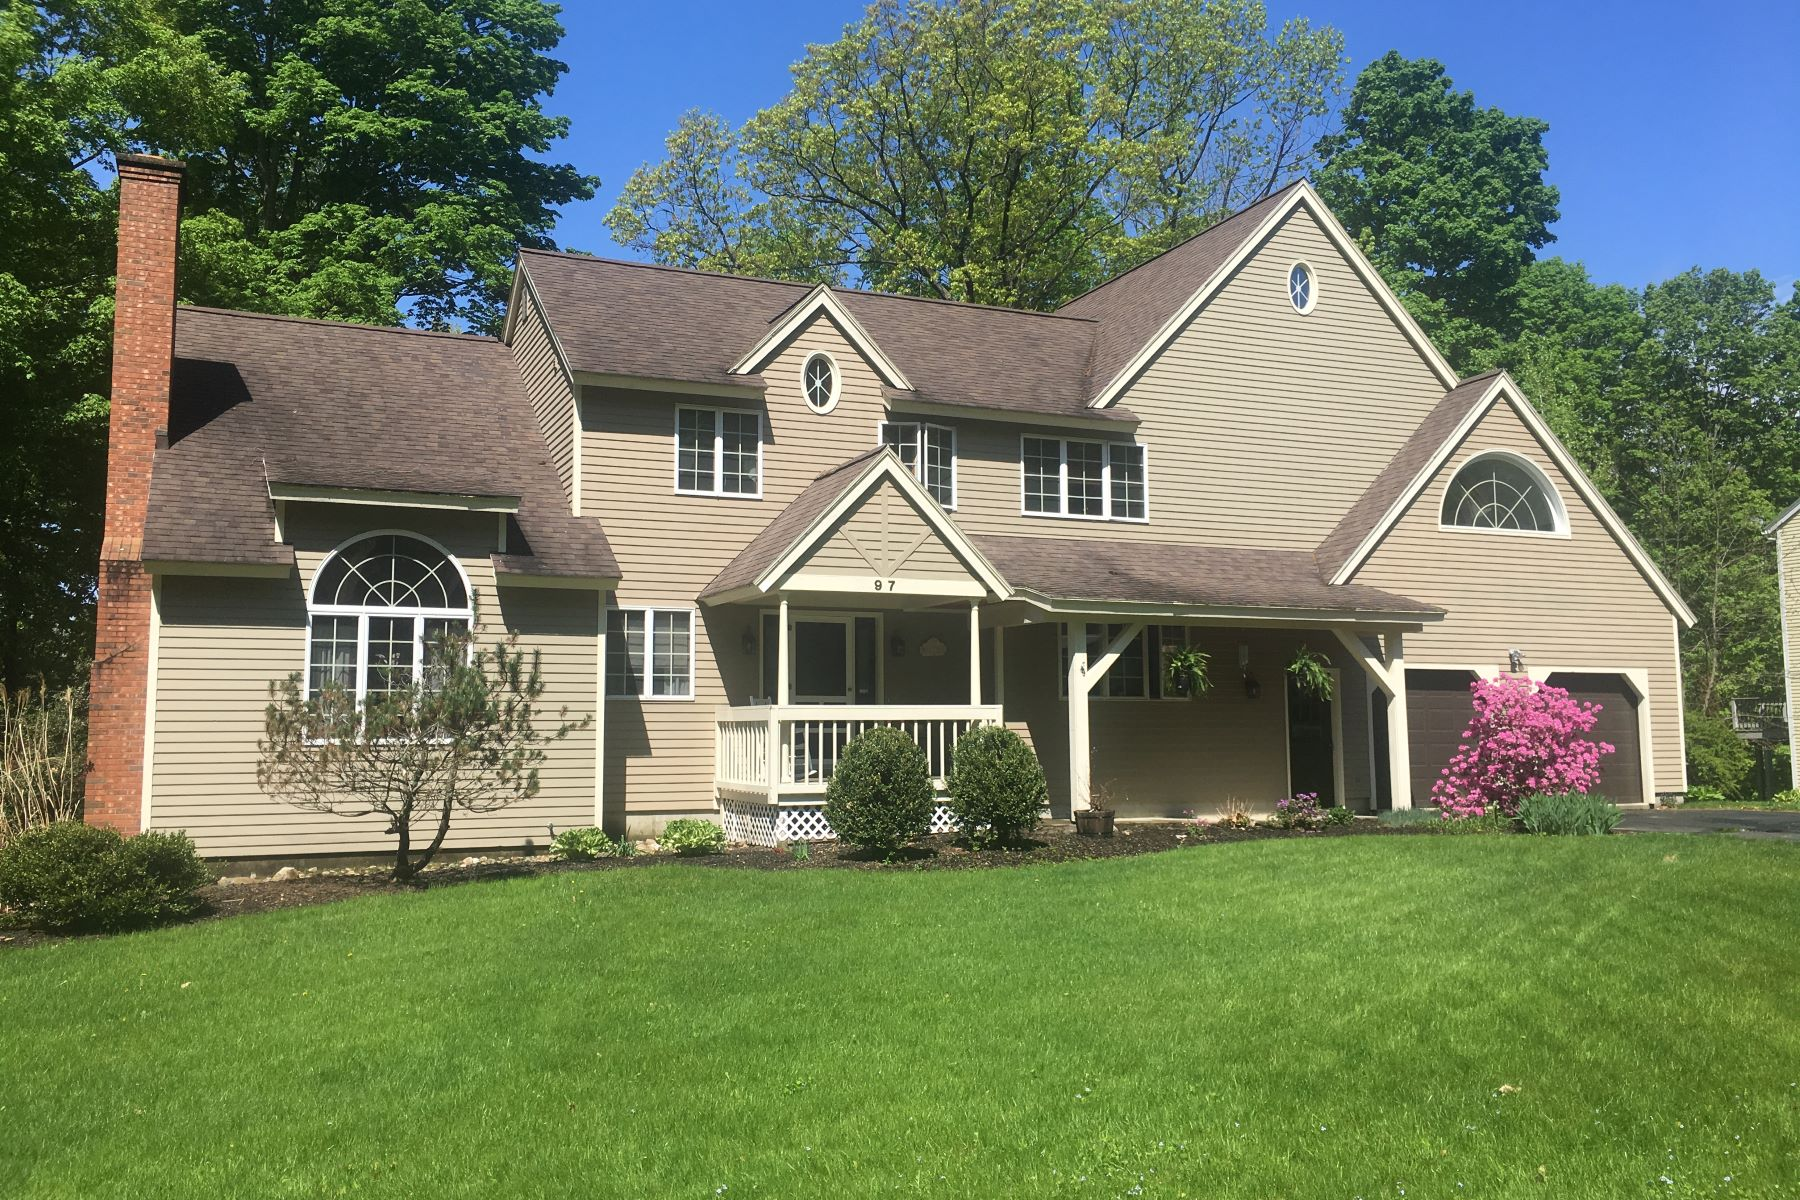 Single Family Homes por un Venta en One of Kind - Architect Designed & Built Home in Desirable Dalton Neighborhood 97 Elmore Dr Dalton, Massachusetts 01226 Estados Unidos